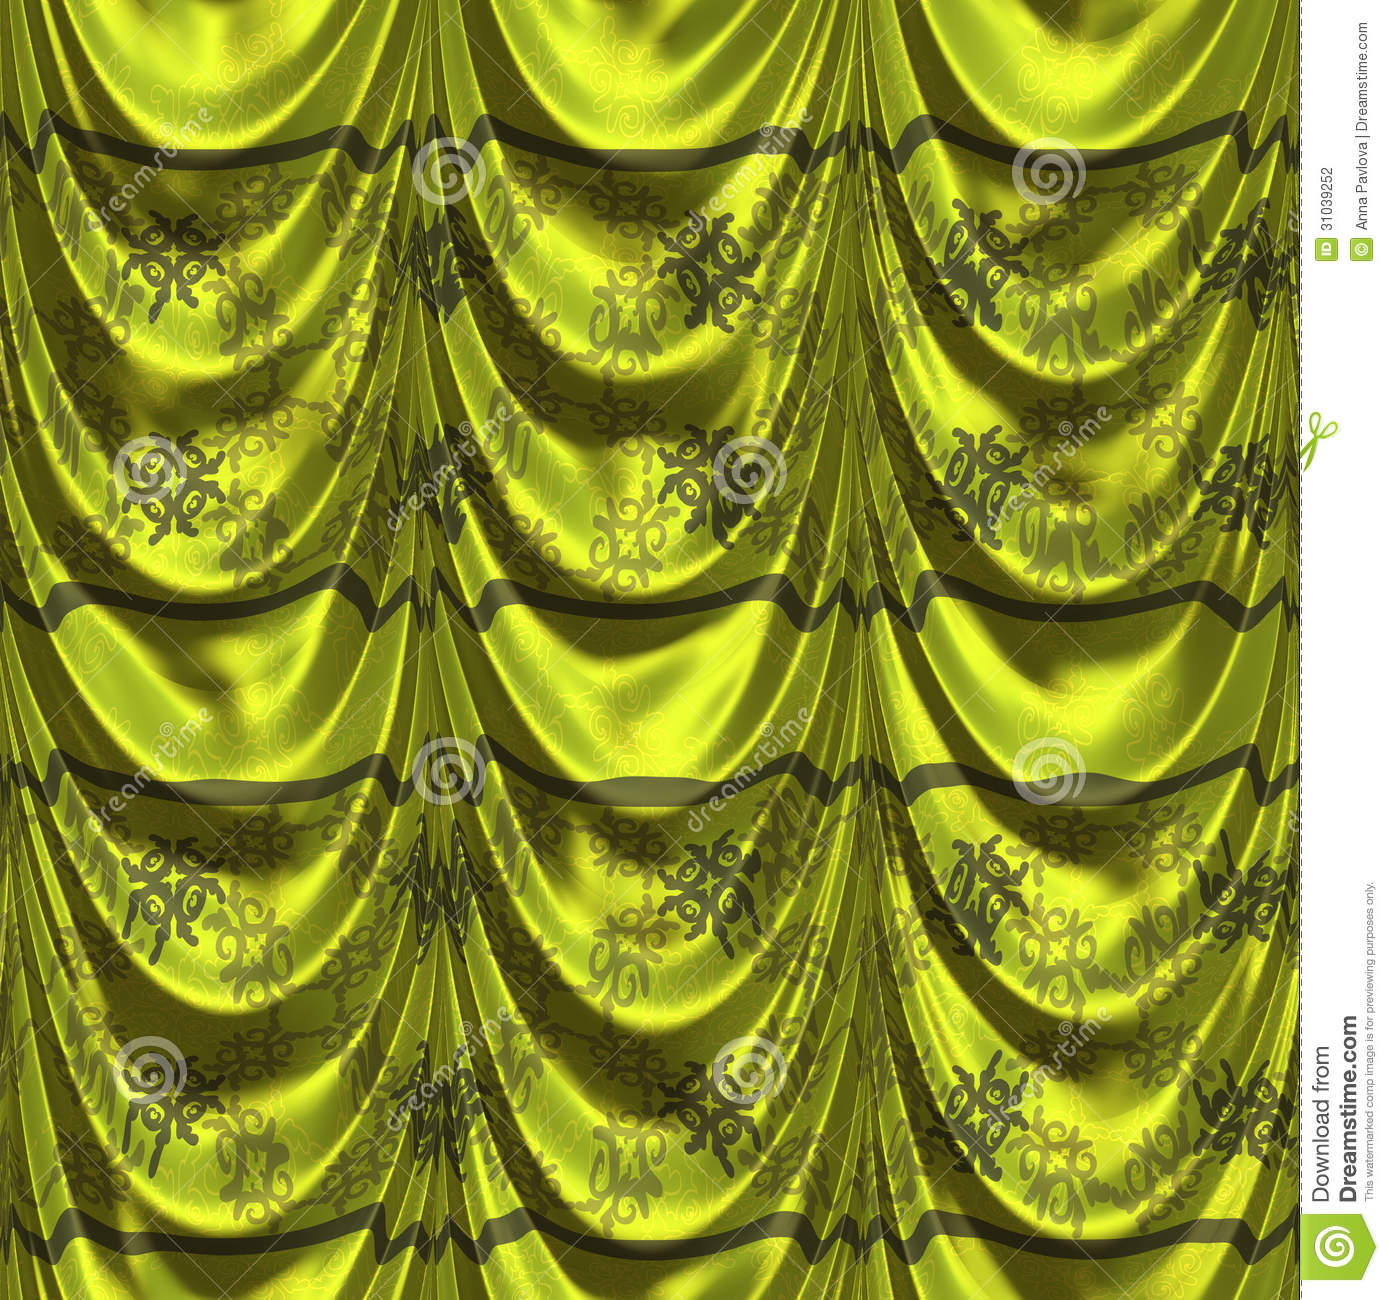 Green curtain with pattern stock photography image 31039252 - Green curtain patterns ...